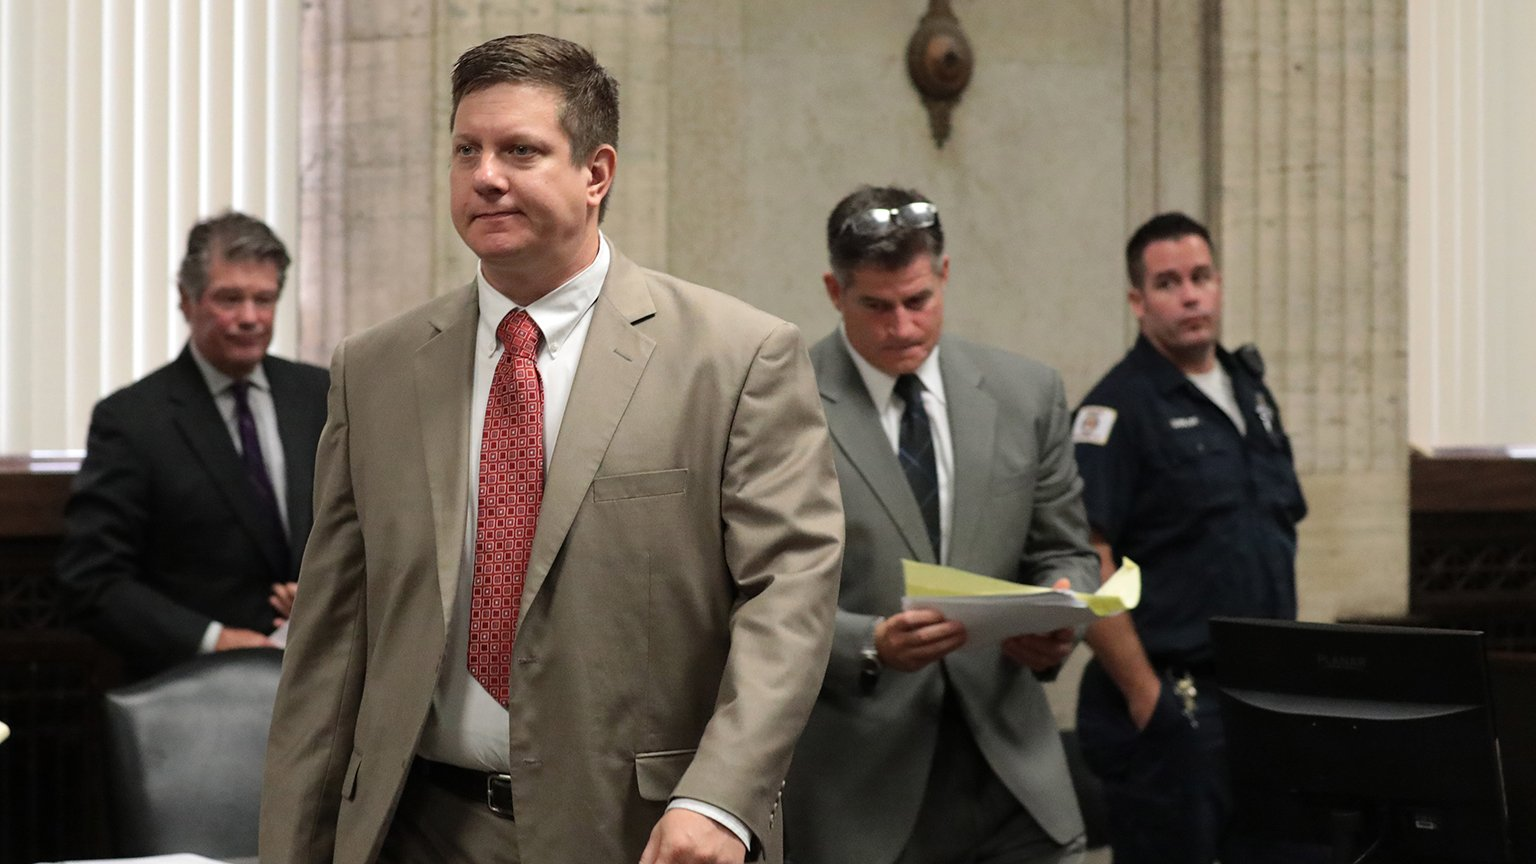 Chicago police Officer Jason Van Dyke walks over to the judge's bench at the start of the hearing on the shooting death of Laquan McDonald, at the Leighton Criminal Court Building Monday, Aug. 20, 2018. (Antonio Perez / Chicago Tribune / Pool)